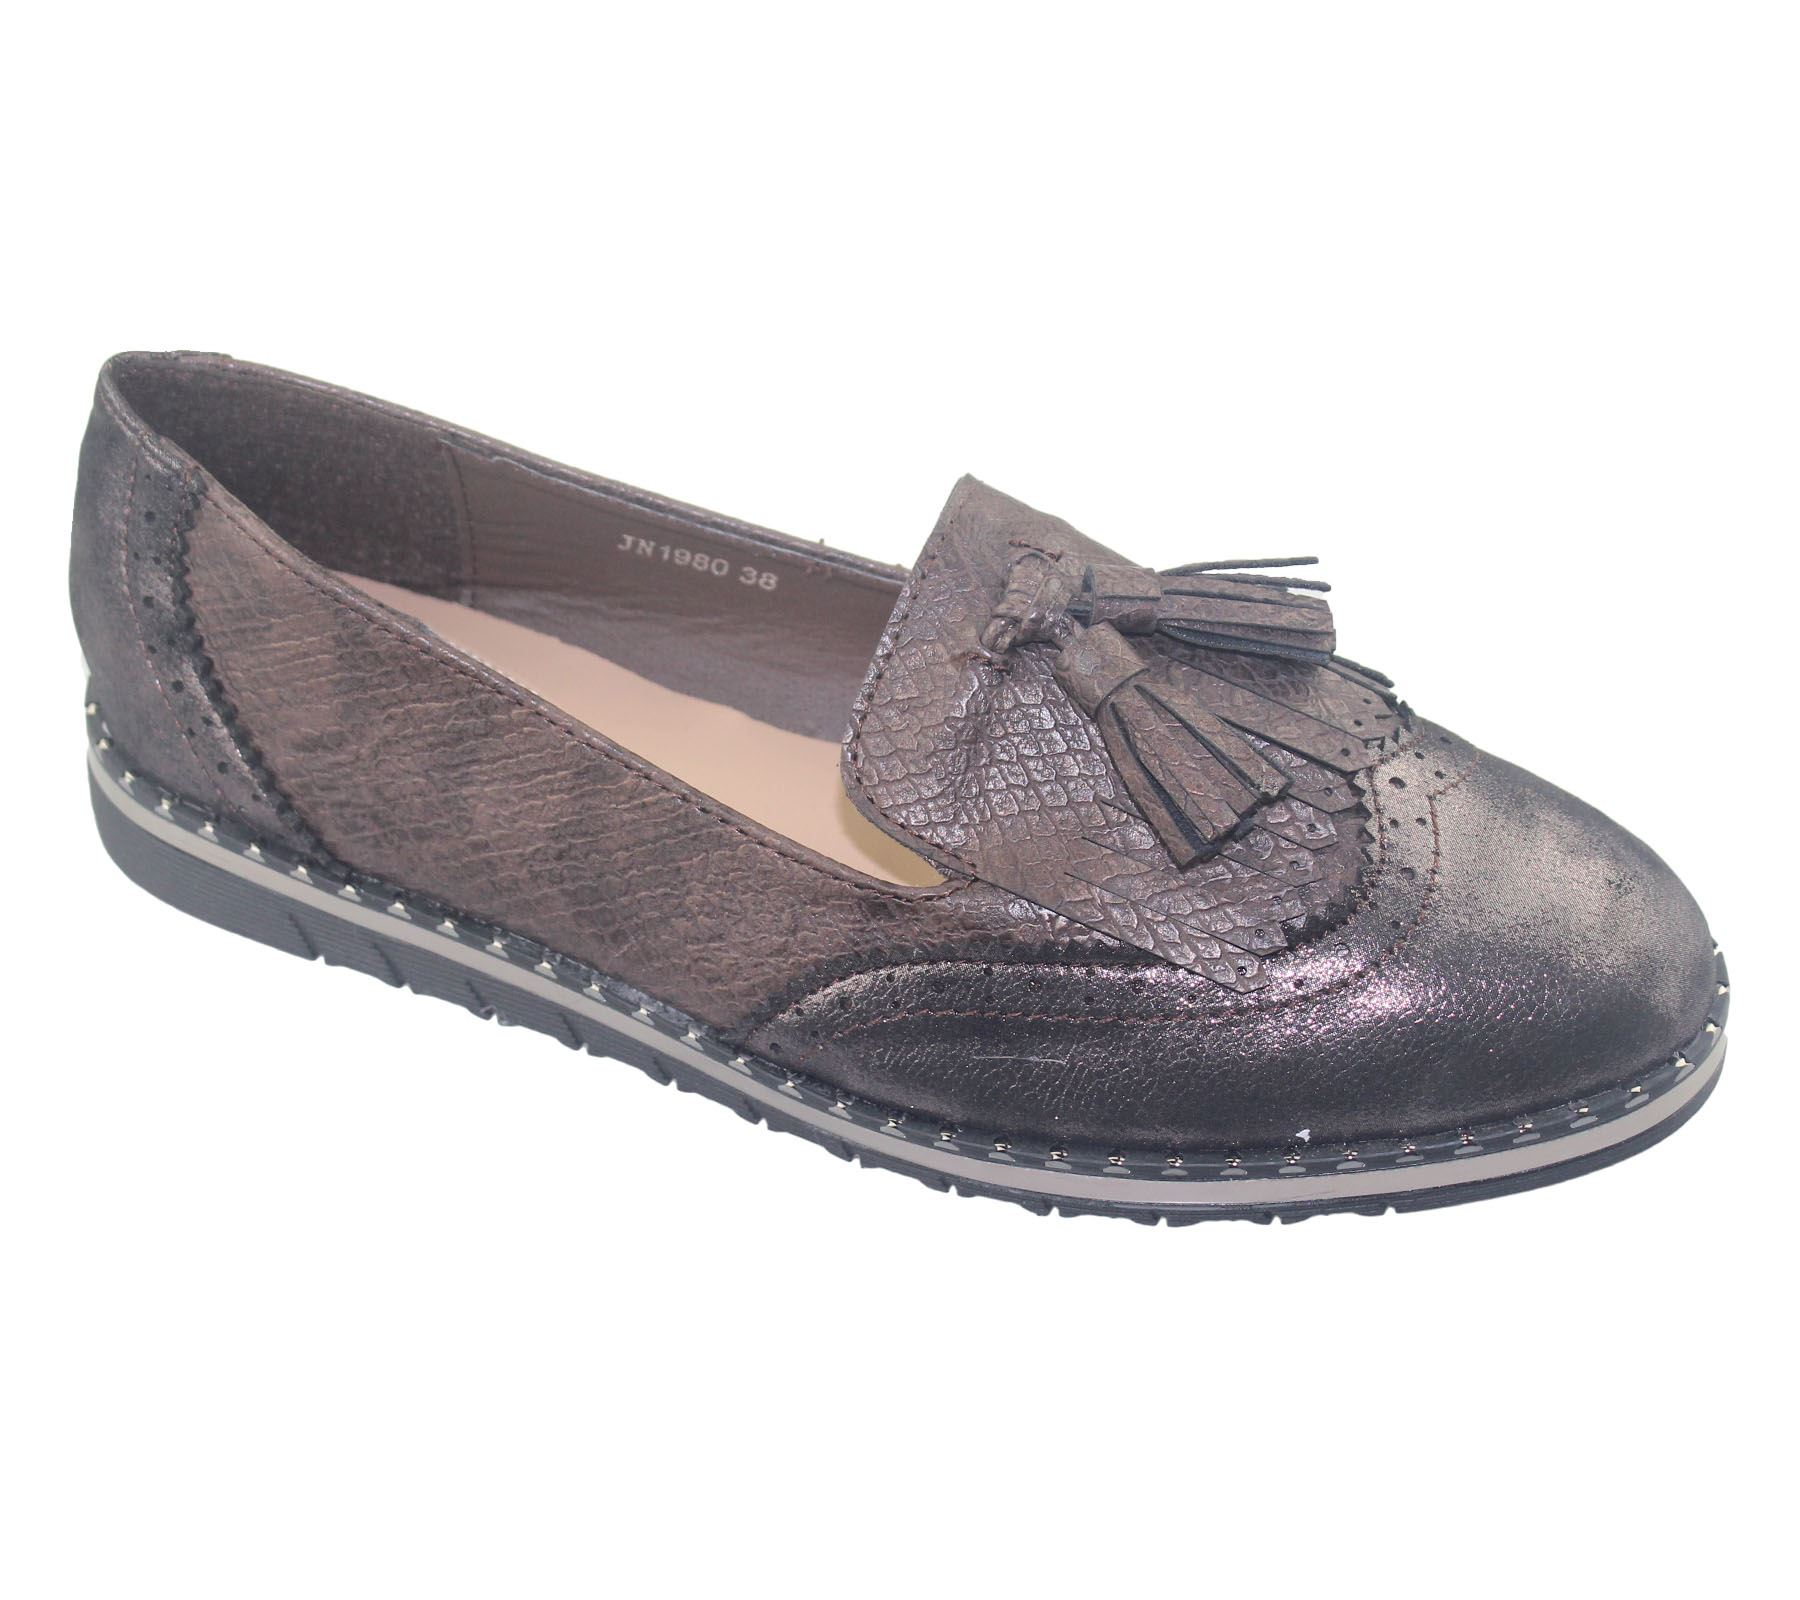 Women-Brogue-Shoes-Ladies-Tassel-Oxford-Office-Snack-Pattent-Loafers-Pumps thumbnail 14